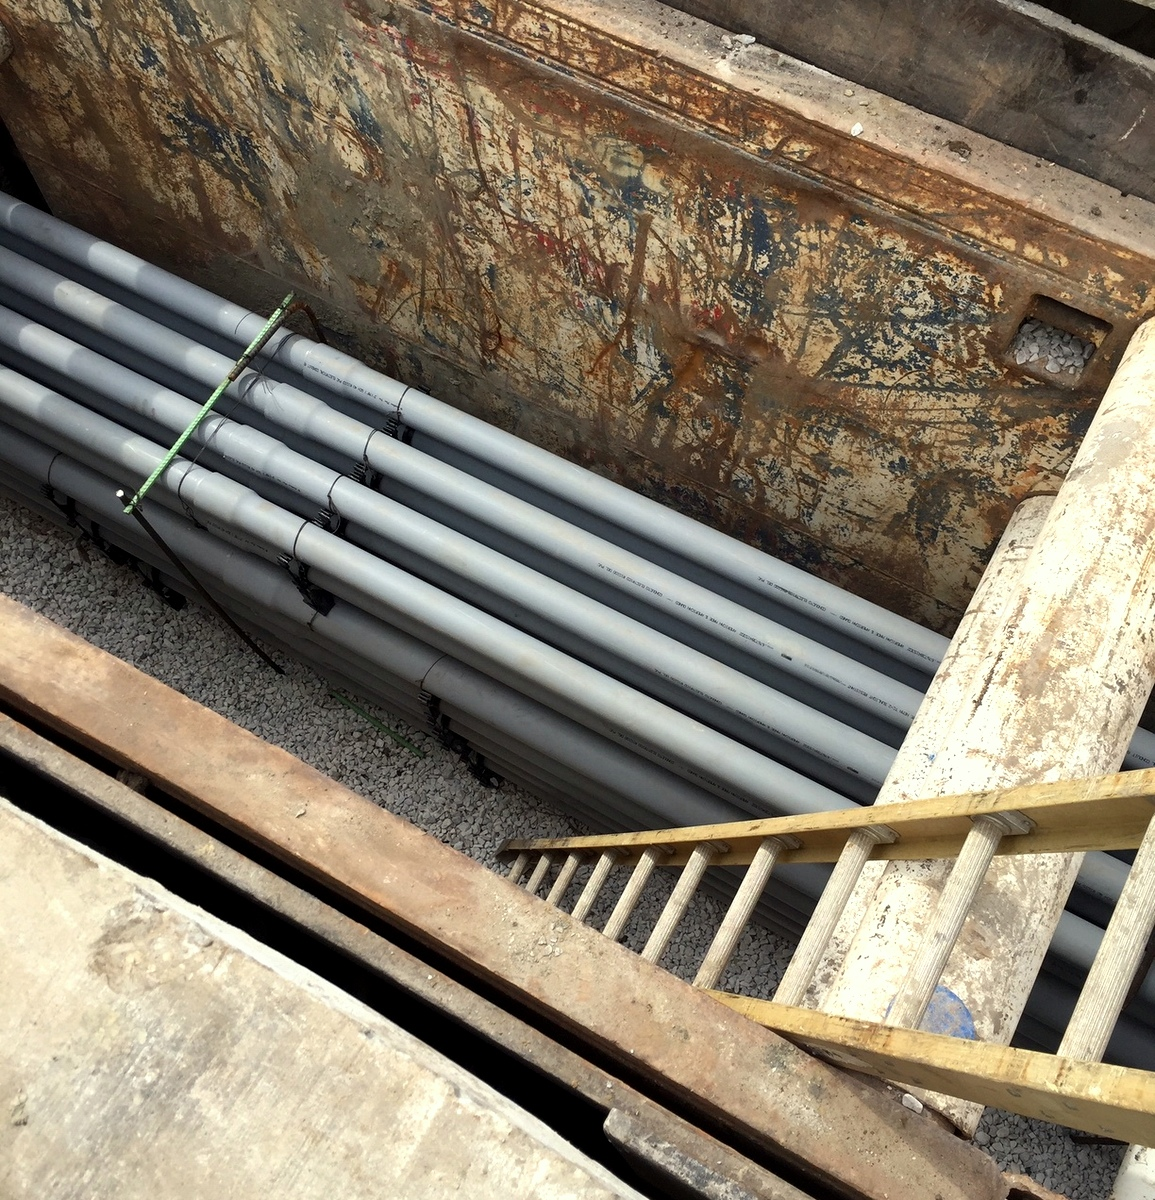 Another view of an exposed conduit chamber. The chambers are built around five feet below the surface and typically can be accessed through manholes. (Mark Reutter)